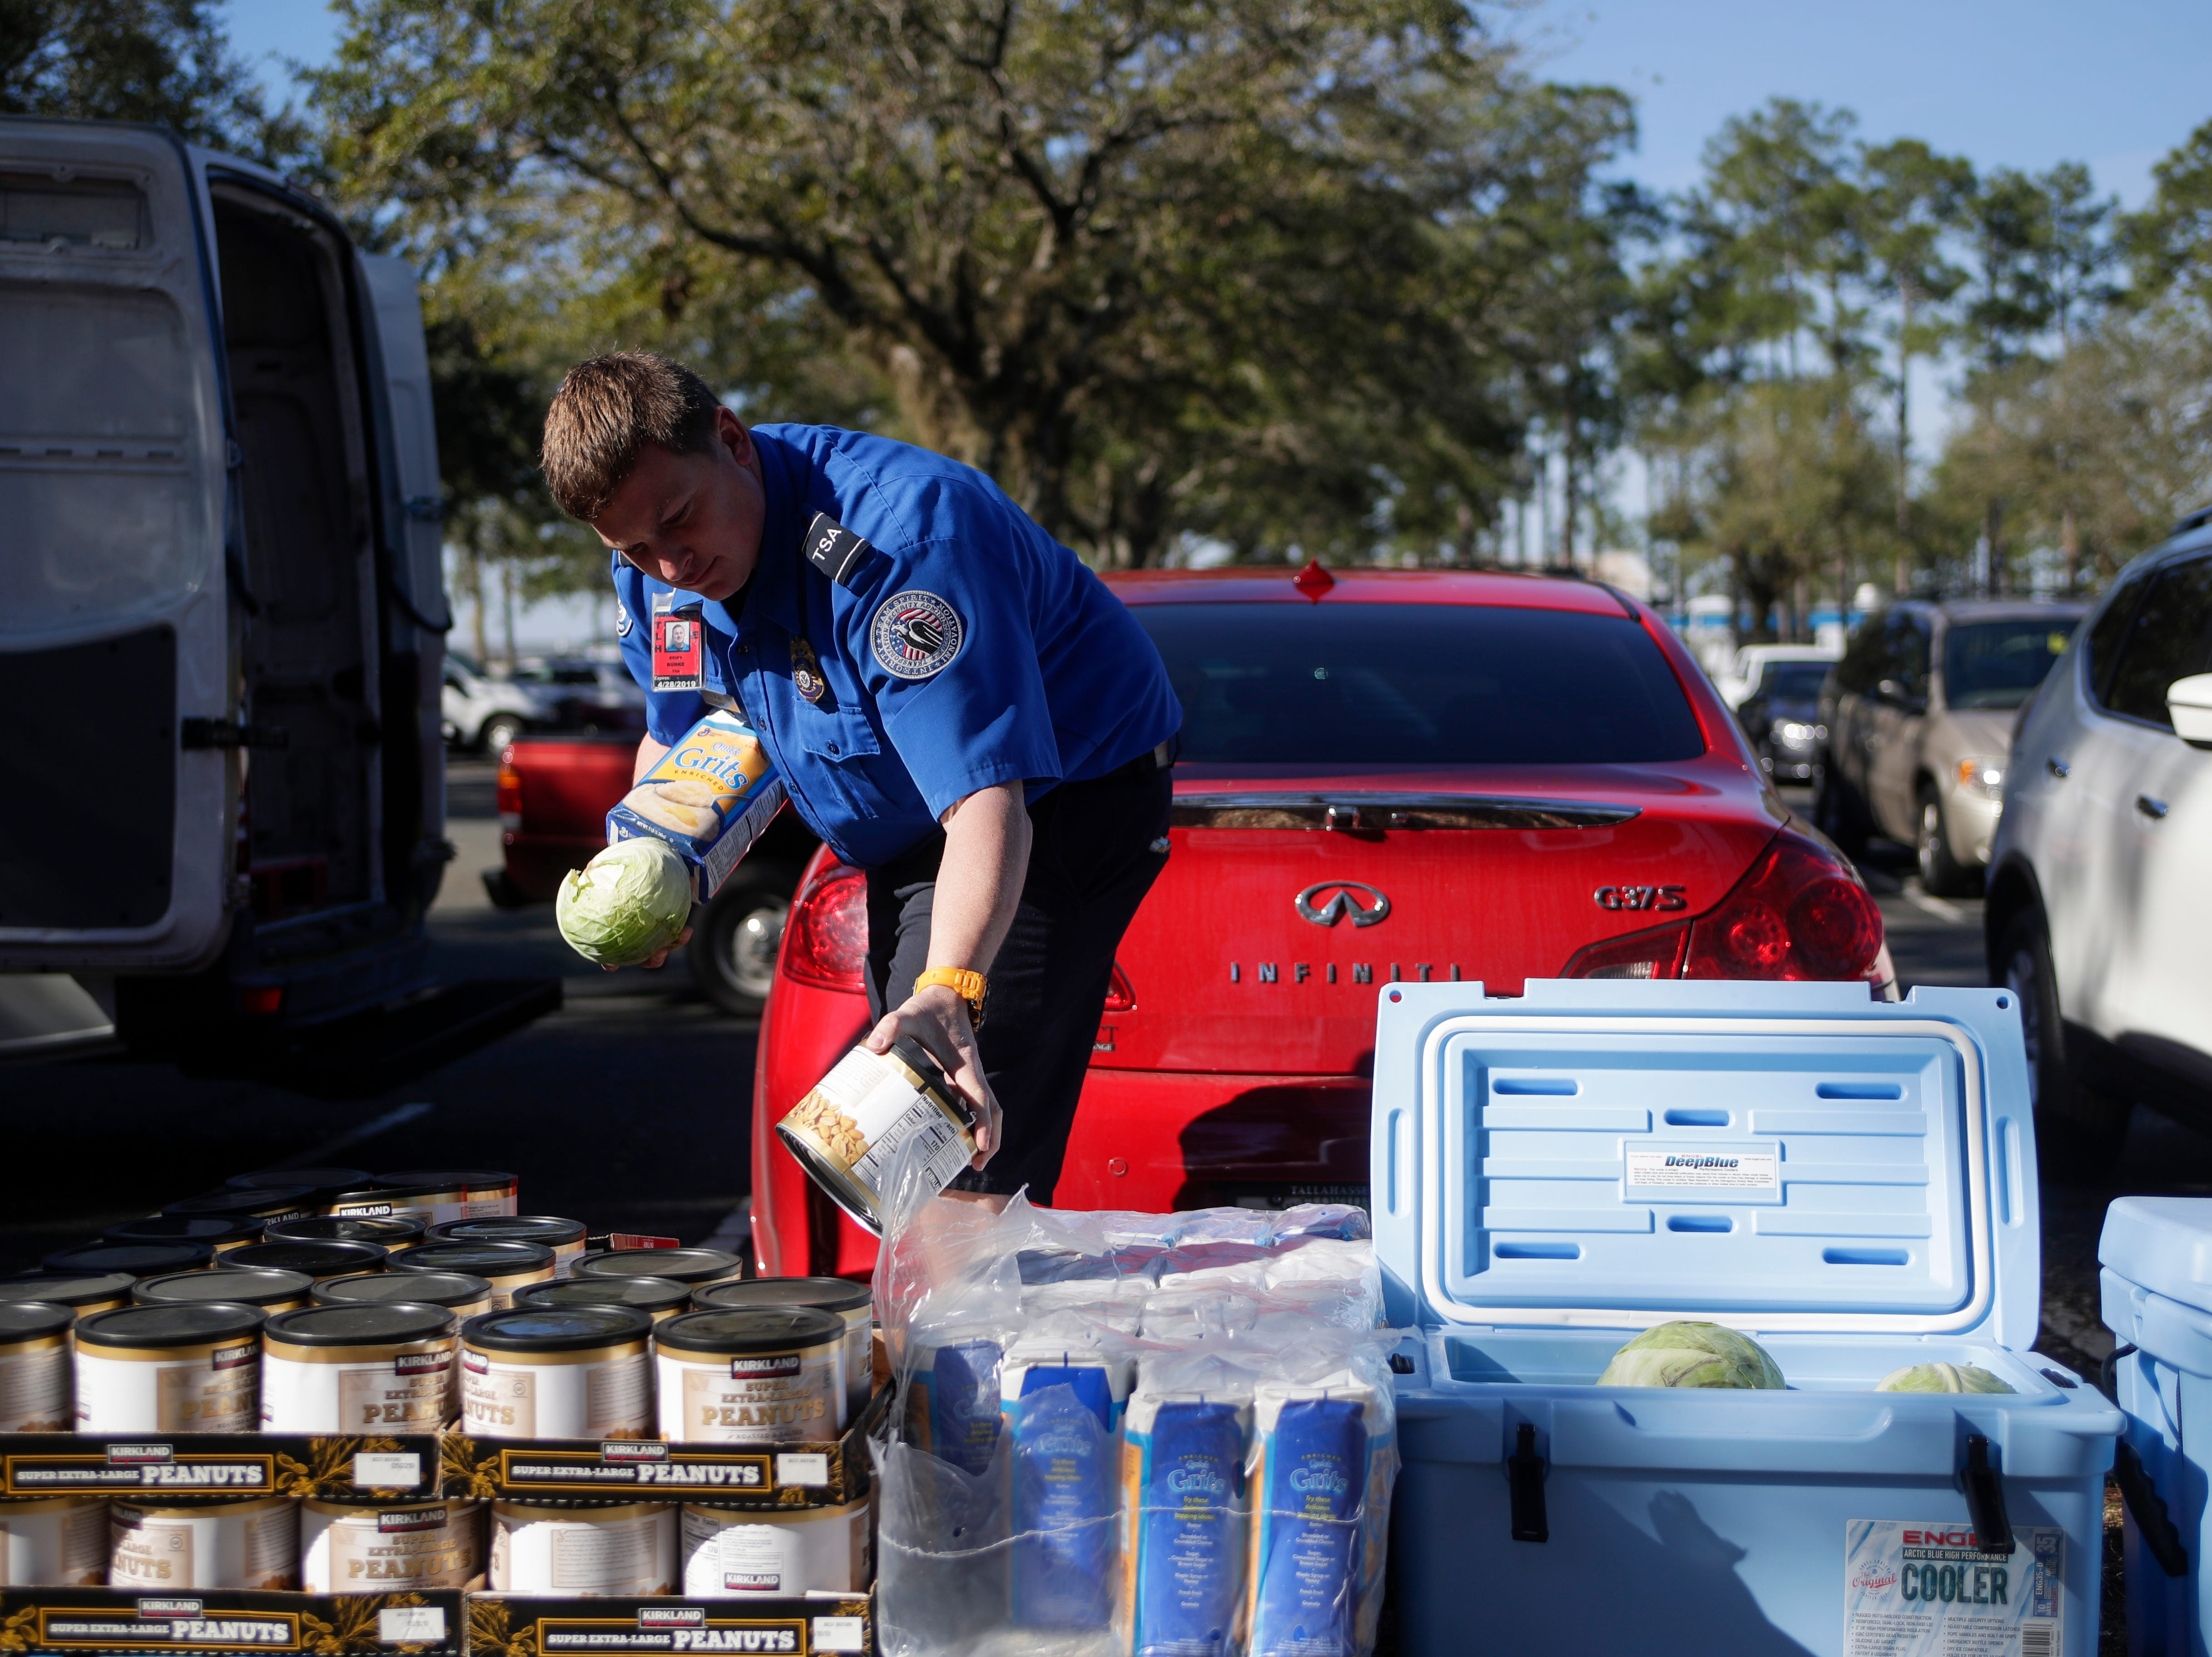 Transportation Security Administration employee Brian Burke chooses a can of peanuts provided by Big Bend Second Harvest to help feed his family of four children as he works without pay at the Tallahassee International Airport Thursday, Jan. 17, 2019.